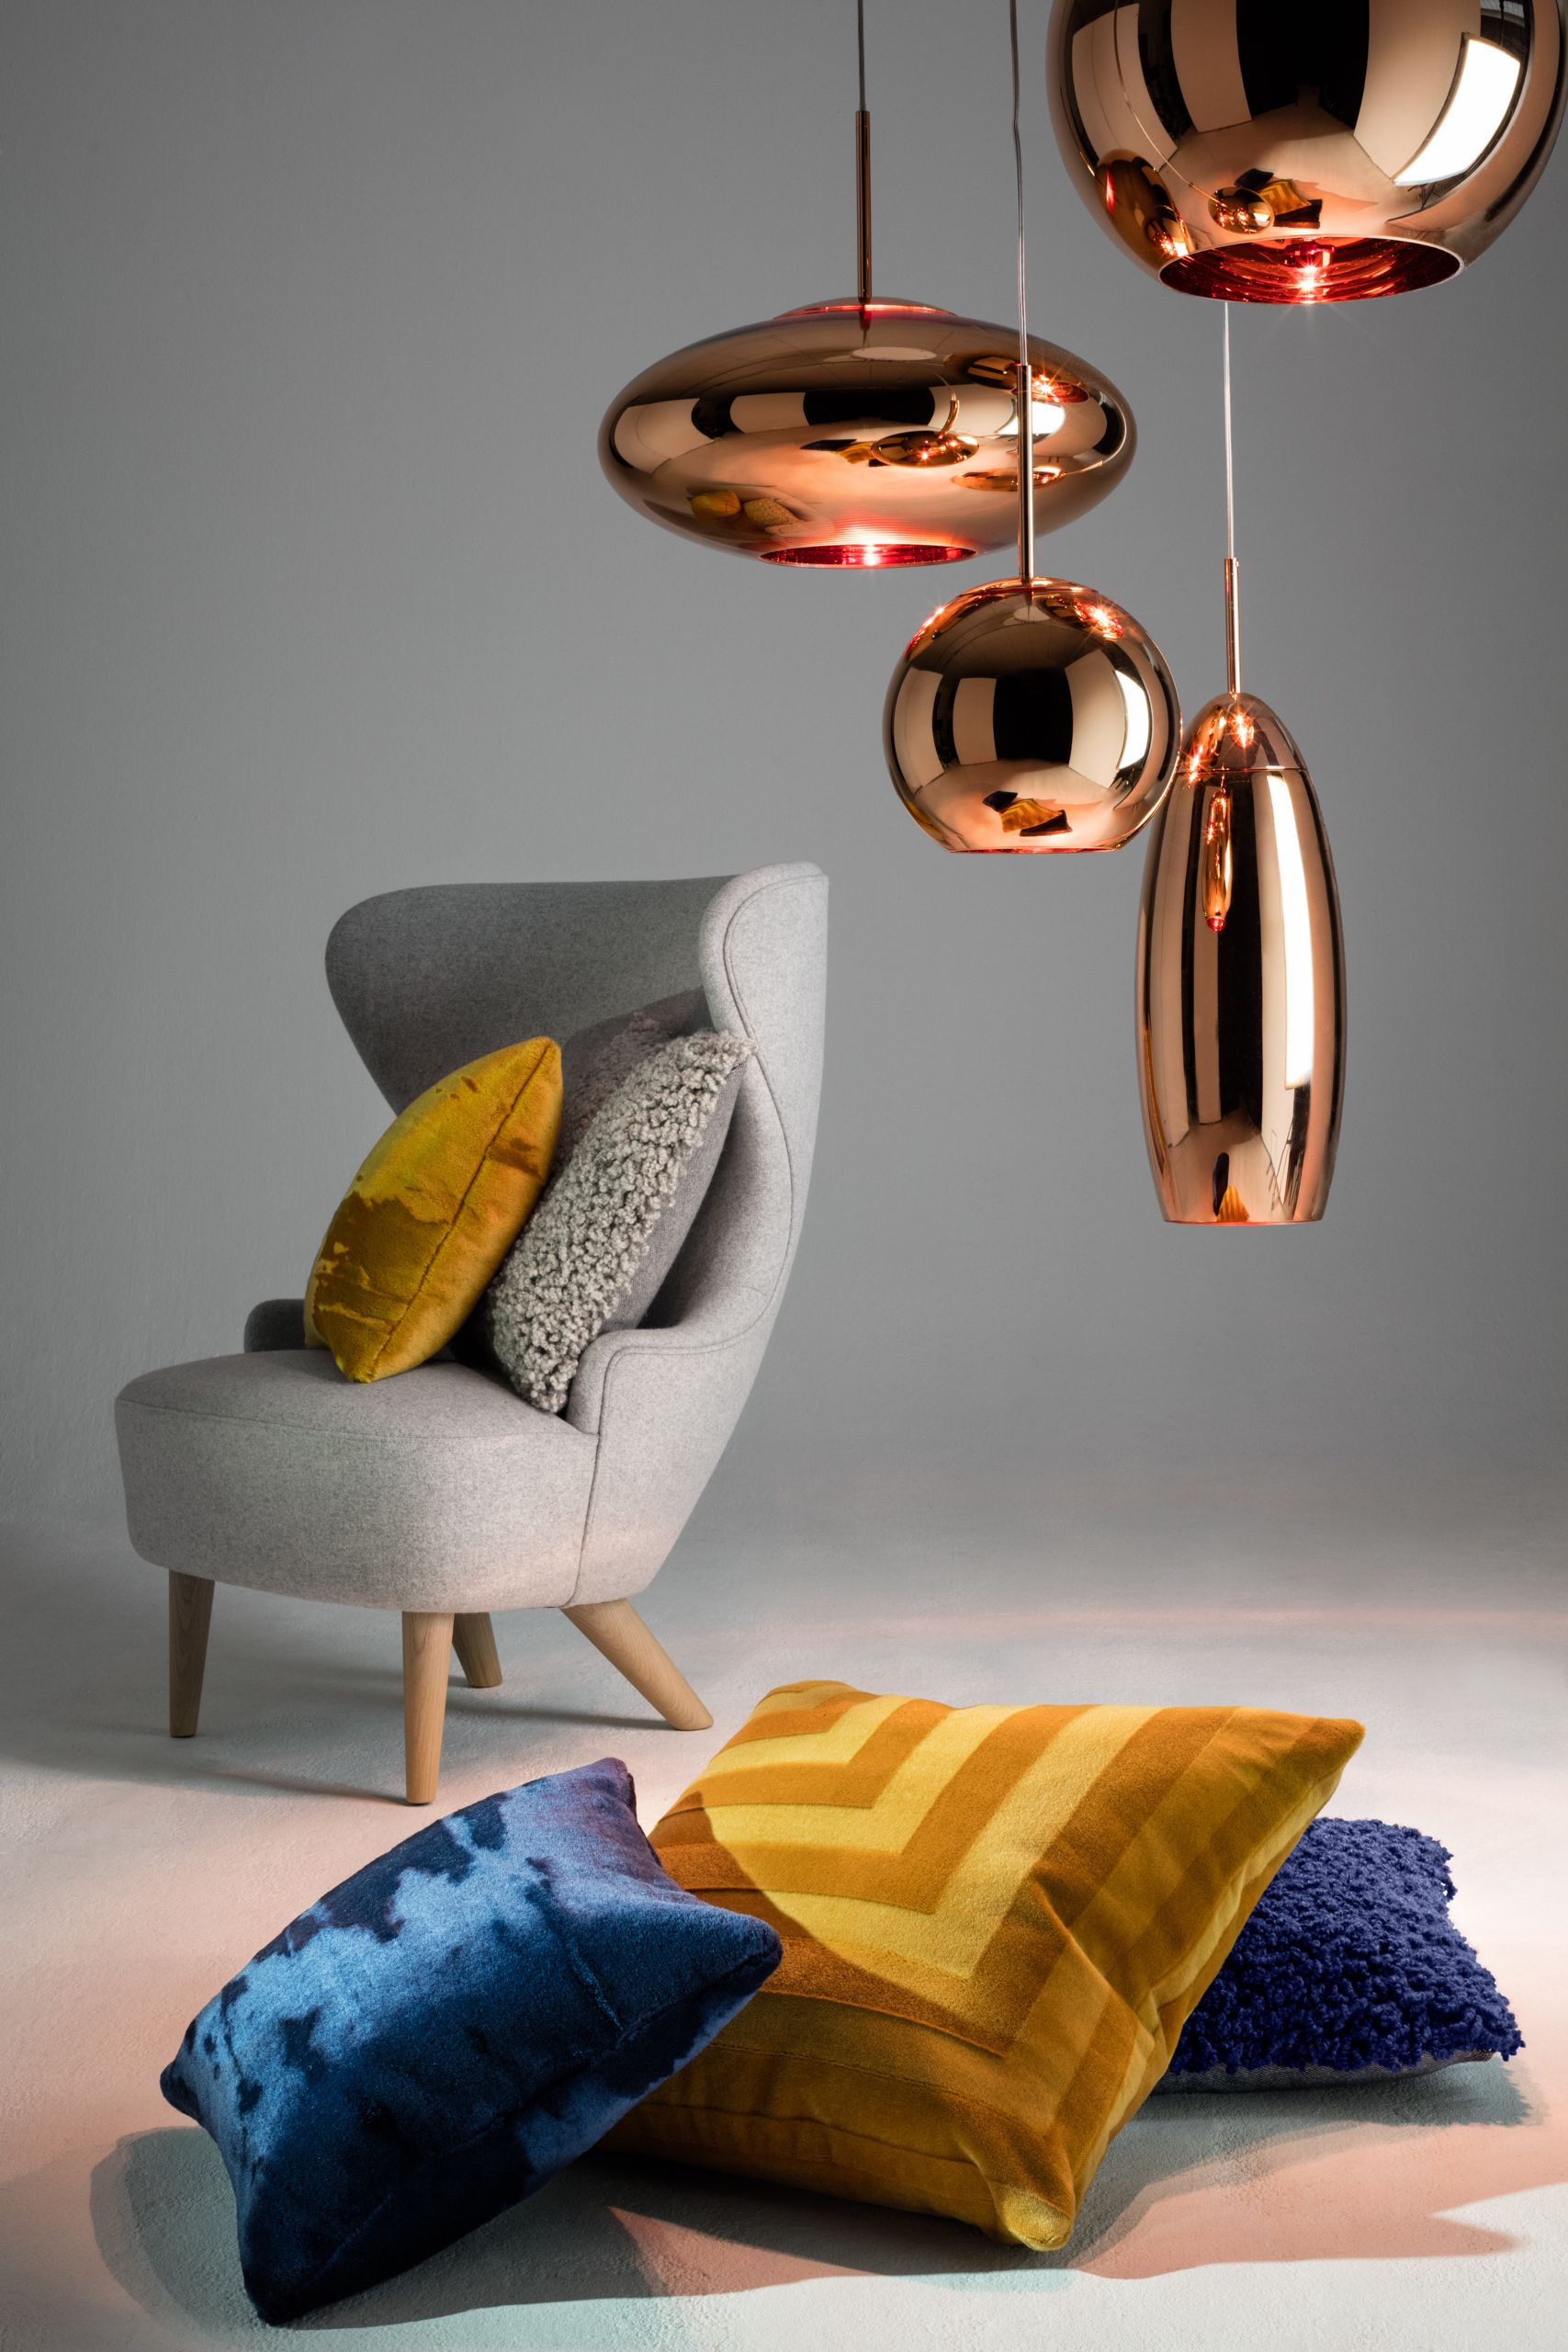 Copper Round Pendant And Wingback Micro Chair 15 Off All Tom Dixon Lighting Furniture And Accessories Now Thru Octo Tom Dixon Lighting Tom Dixon Home Decor